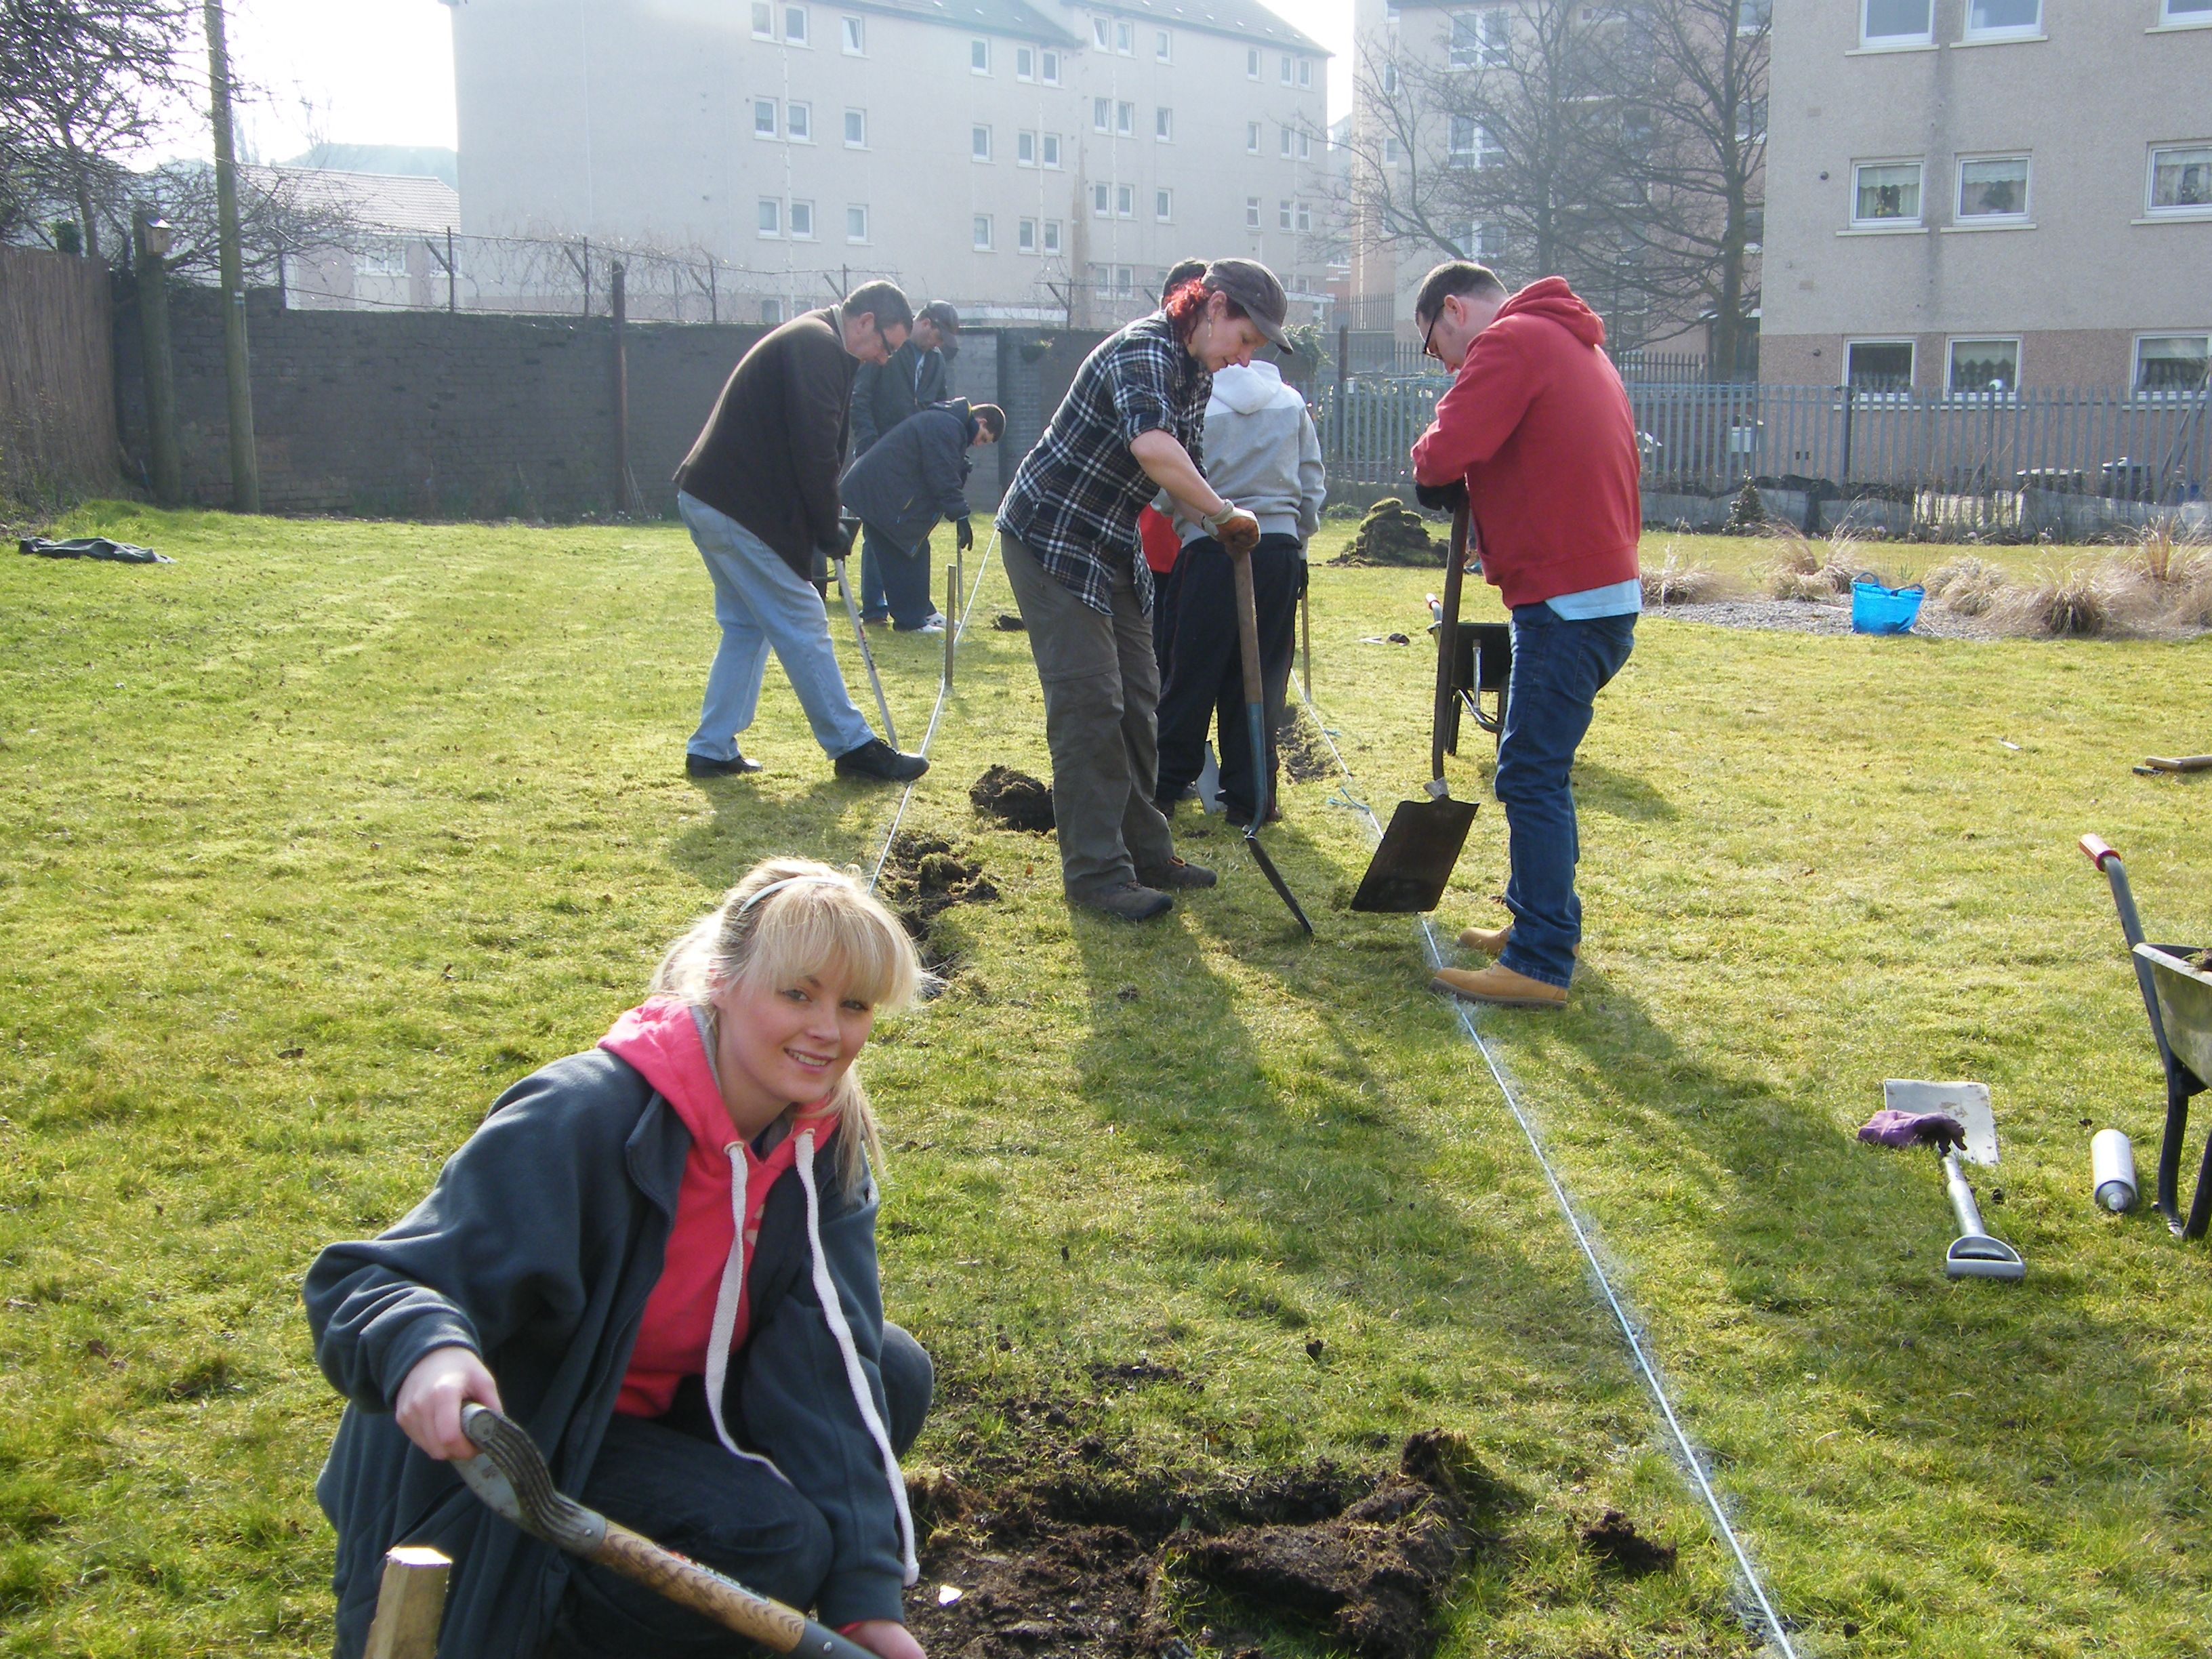 Volunteers building a path in the community garden